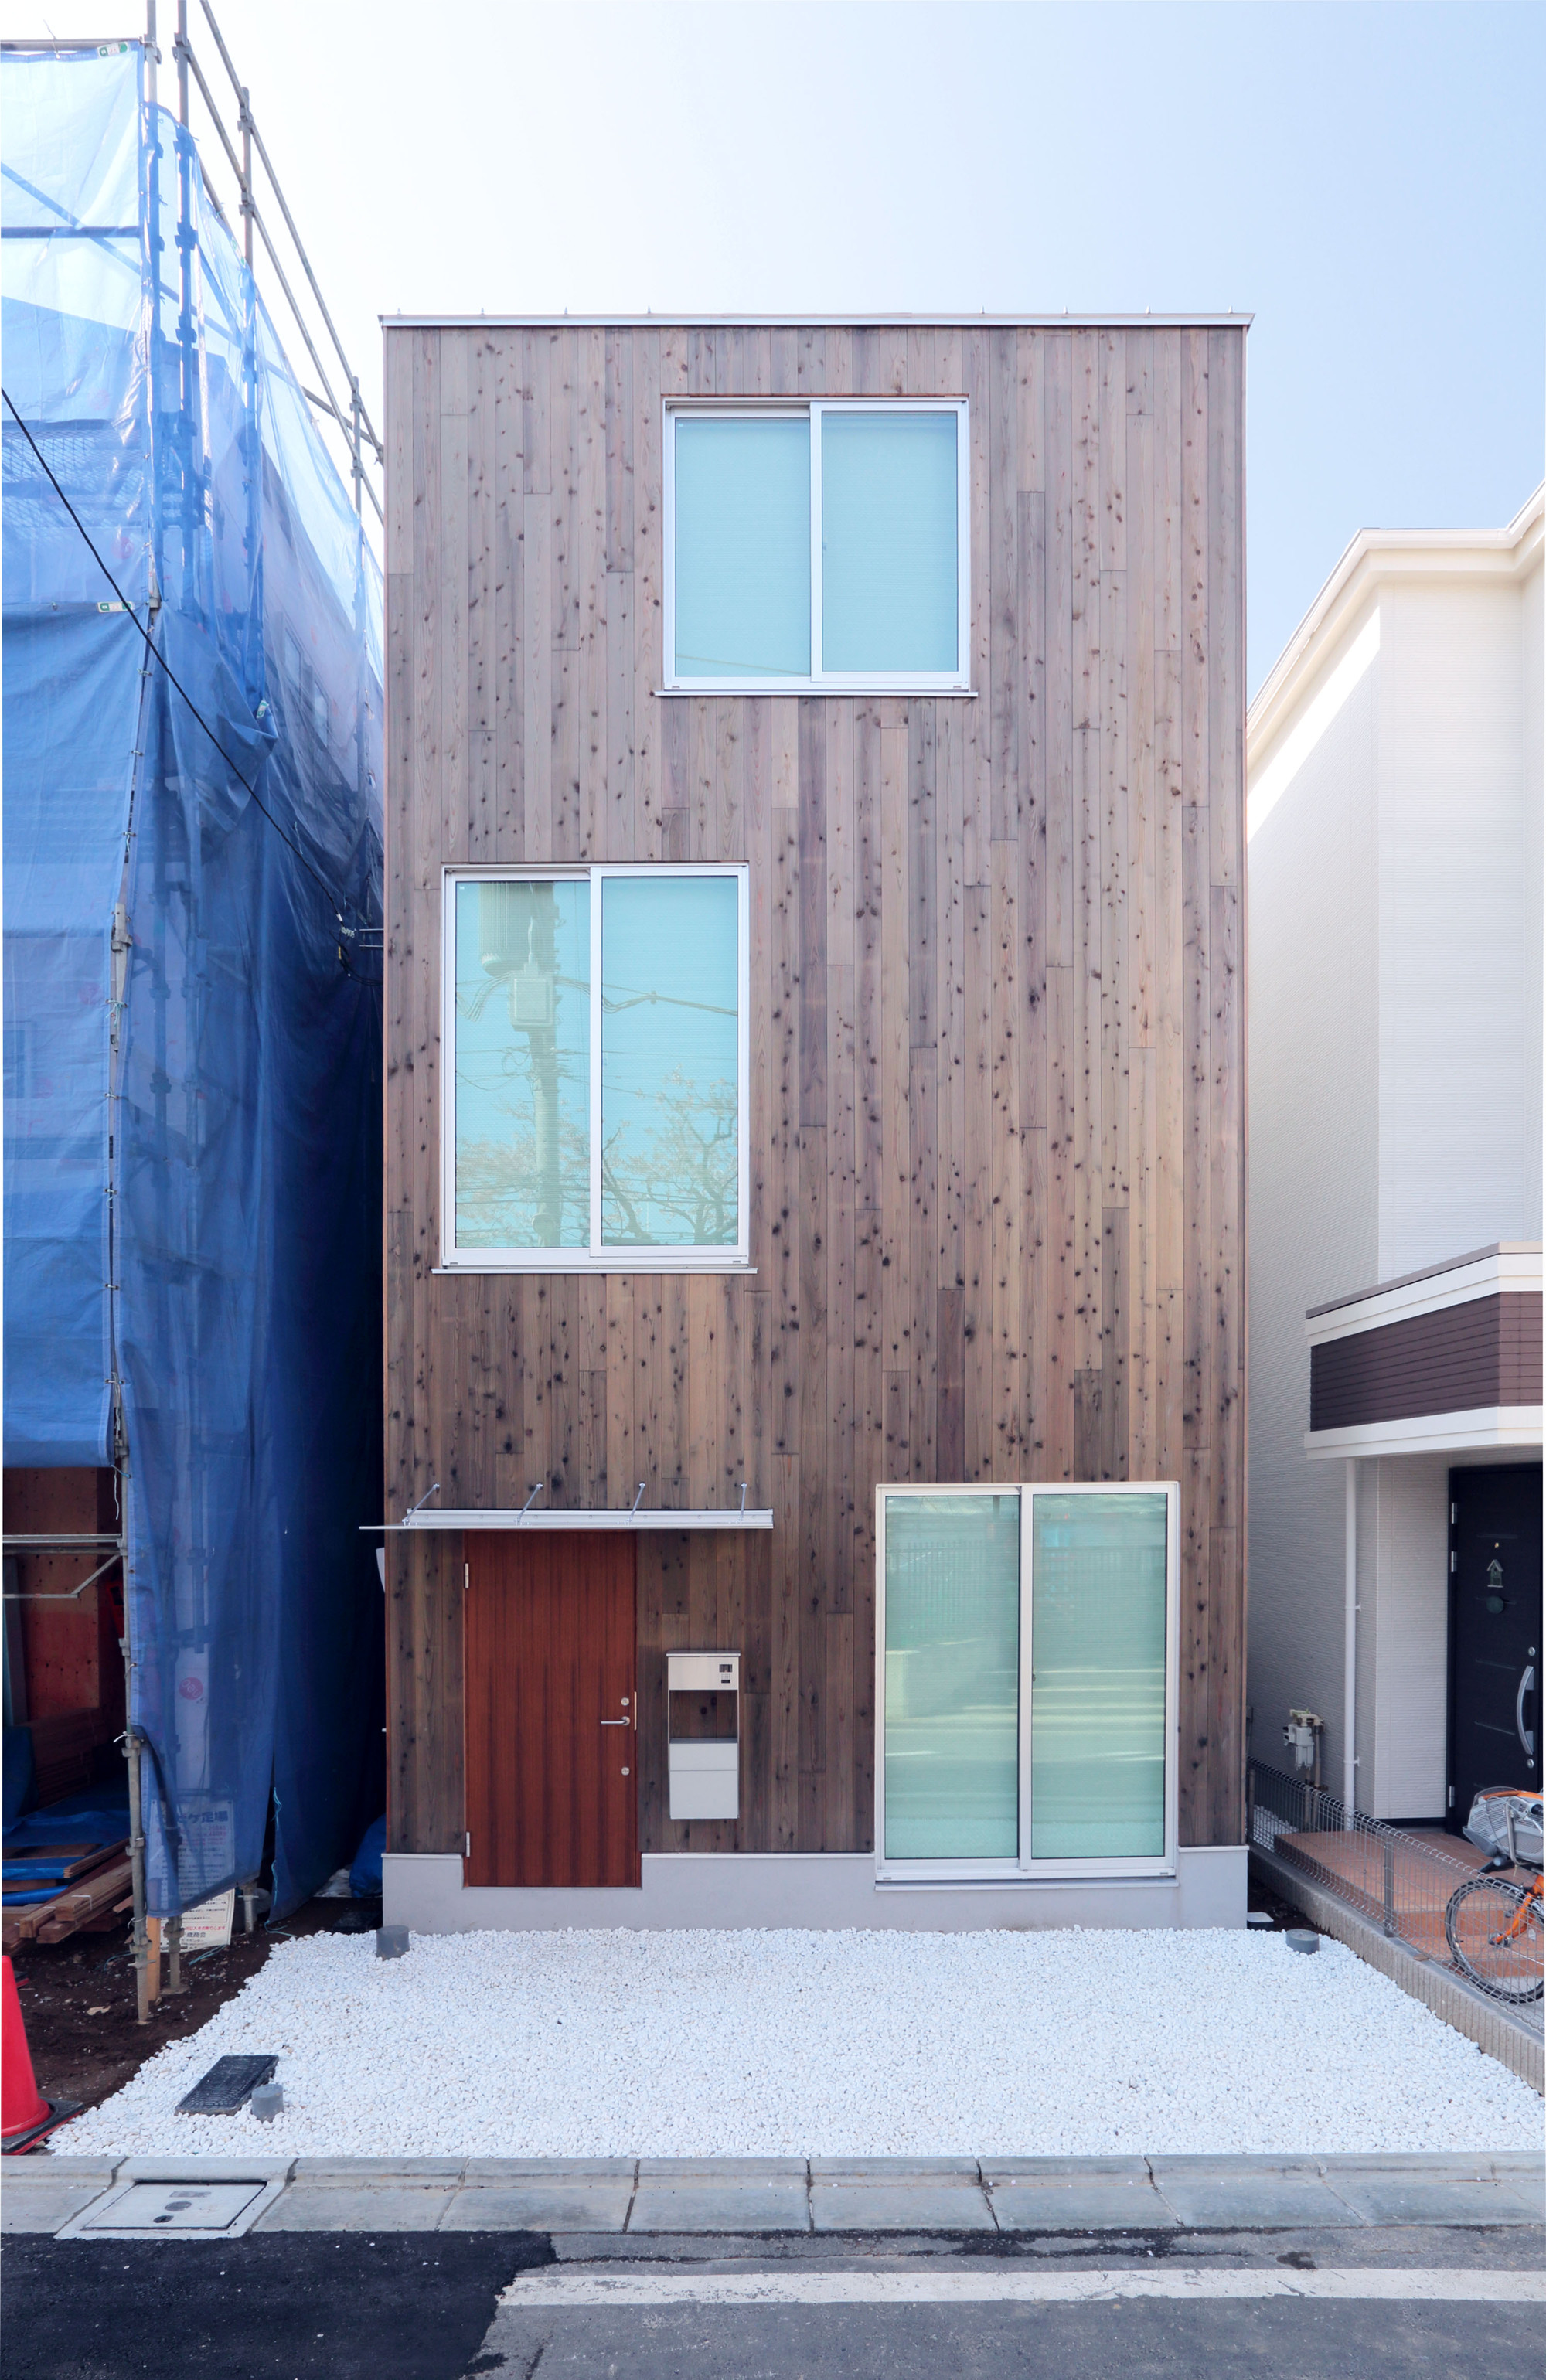 Design Your Own Home With MUJI's Prefab Vertical House